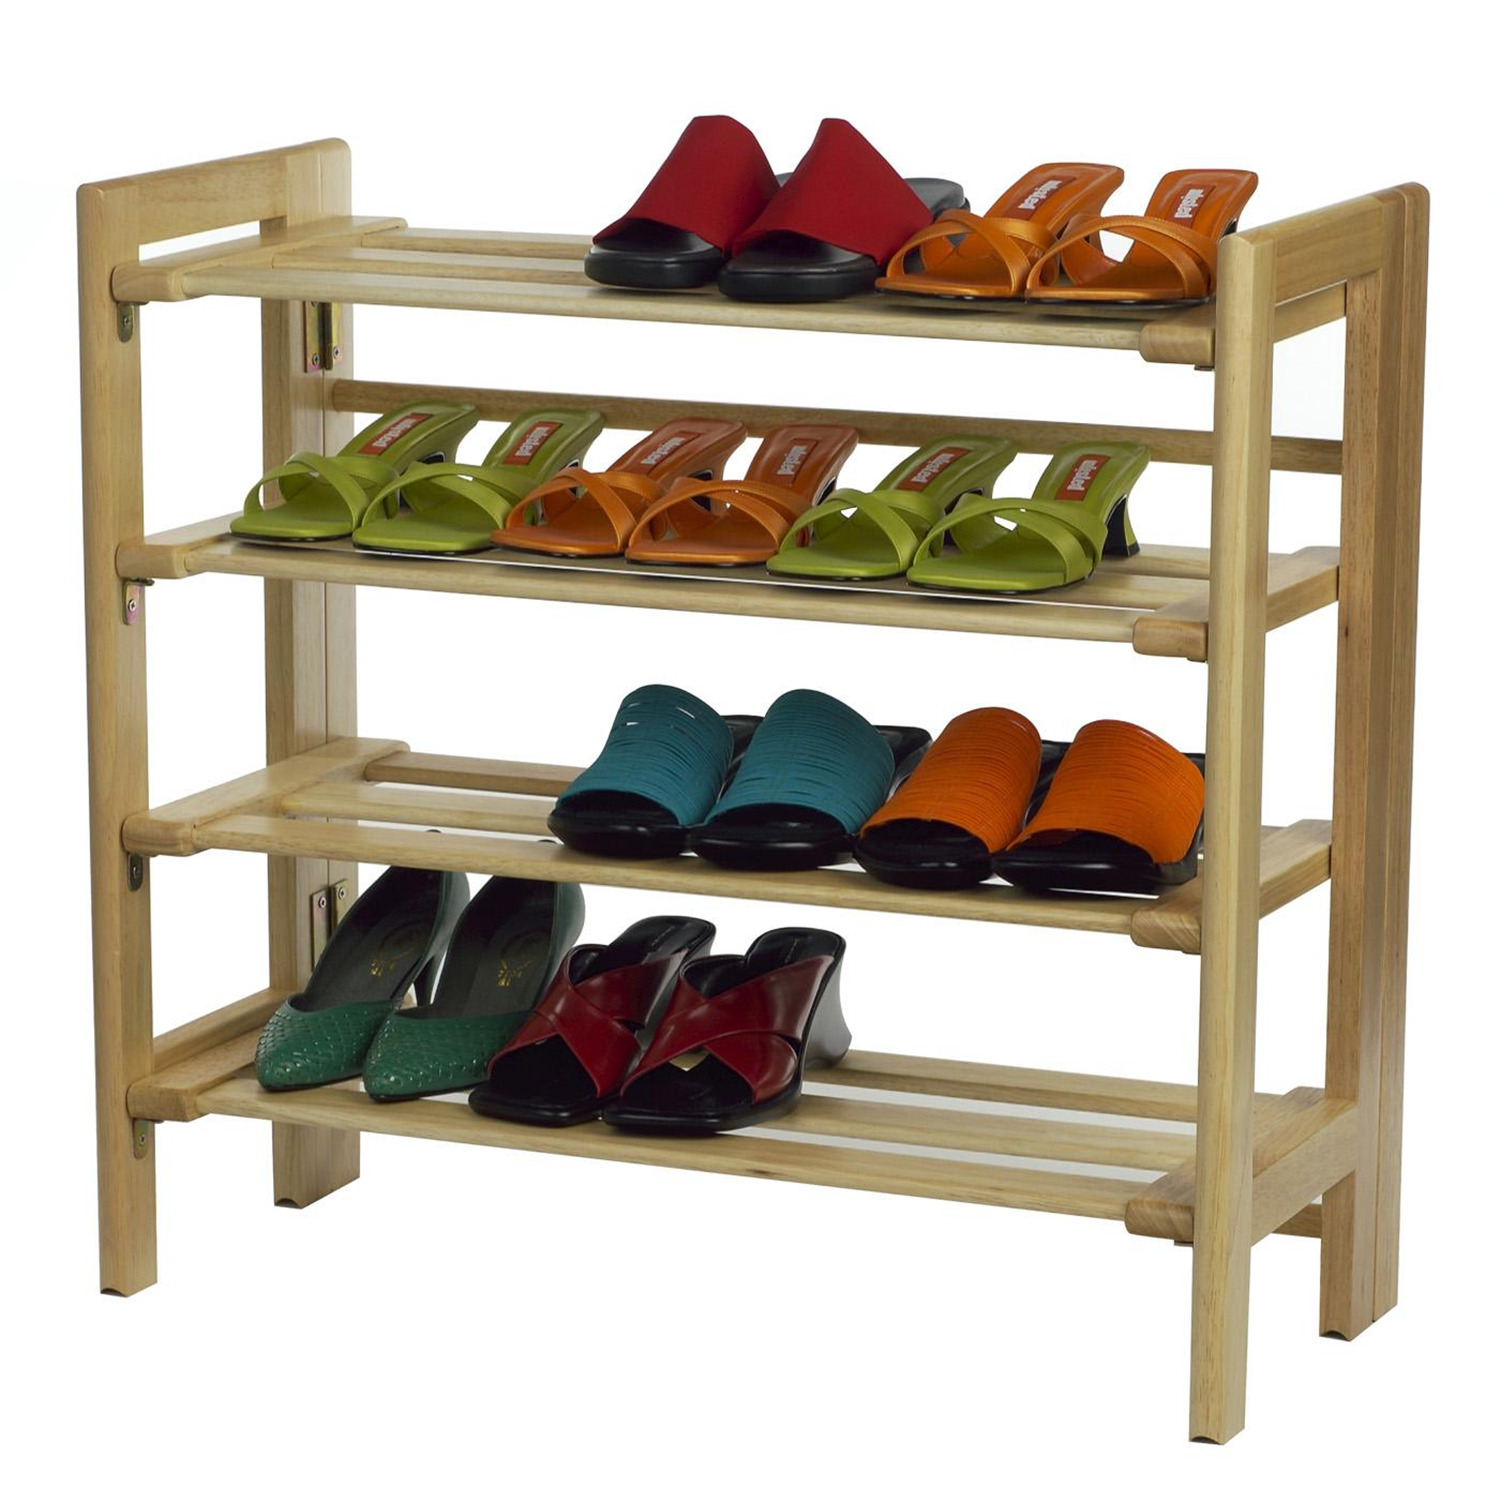 winsome shoe rack 4 tier by oj commerce 81228 57 20